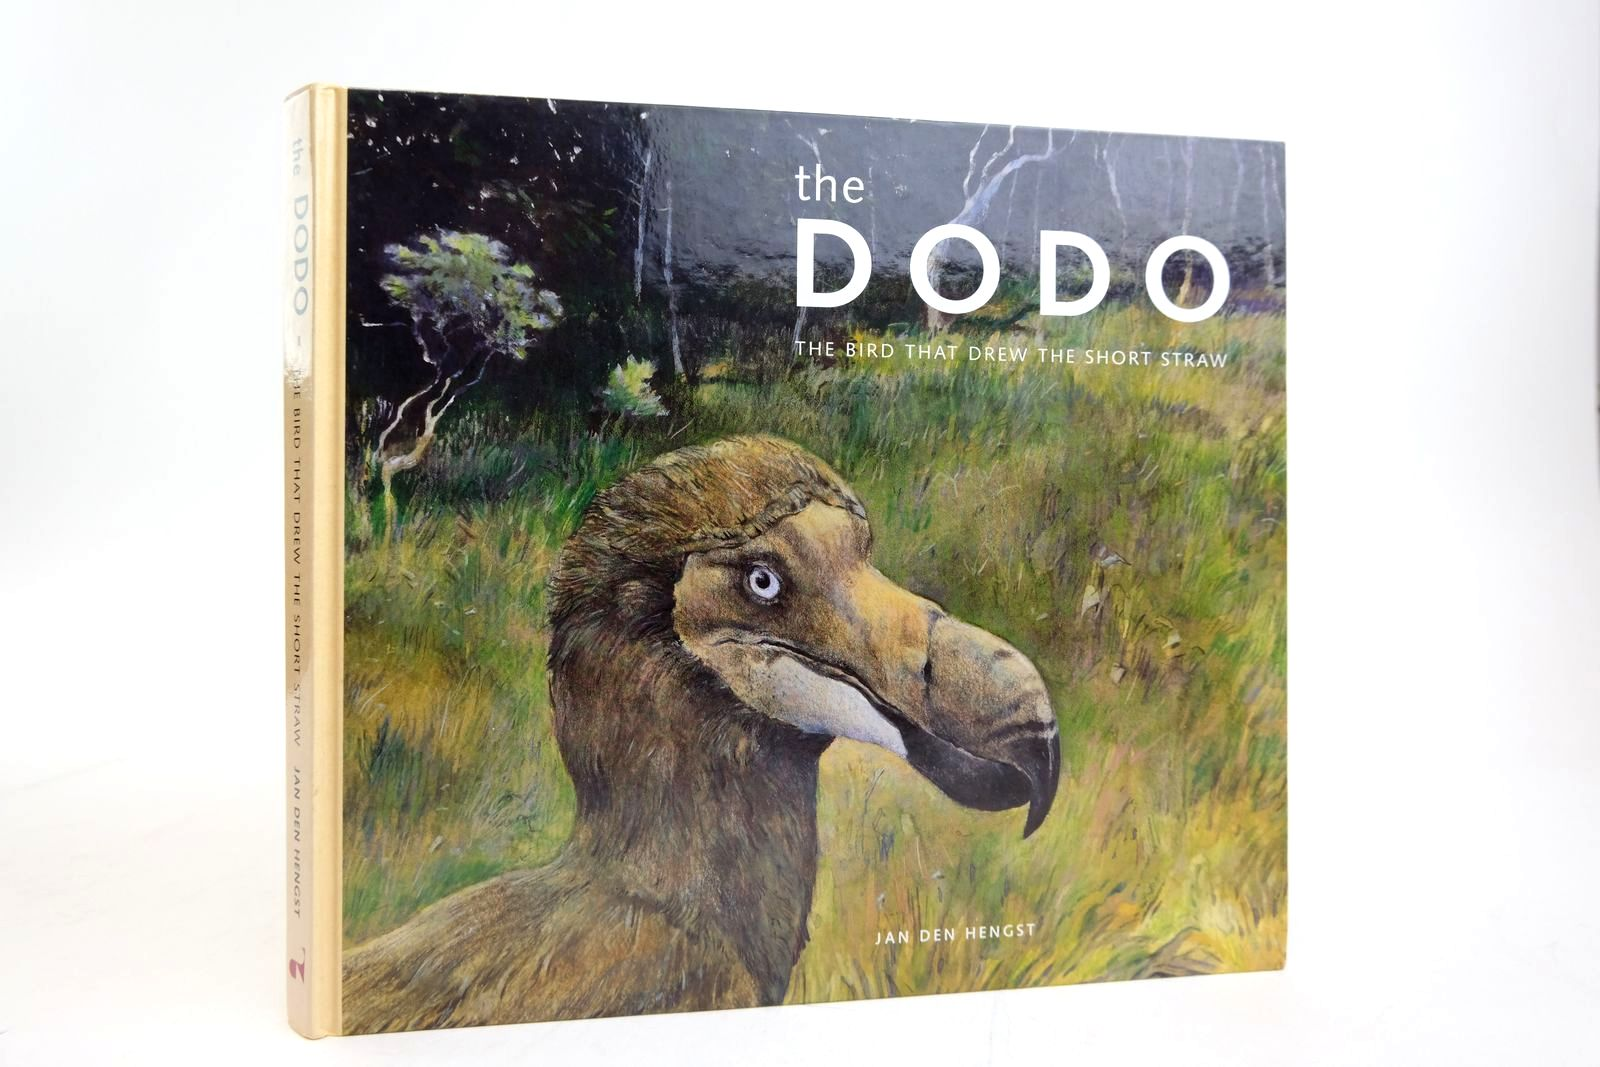 Photo of THE DODO: THE BIRD THAT DREW THE SHORT STRAW written by Den Hengst, Jan published by Art Revisited (STOCK CODE: 2135315)  for sale by Stella & Rose's Books